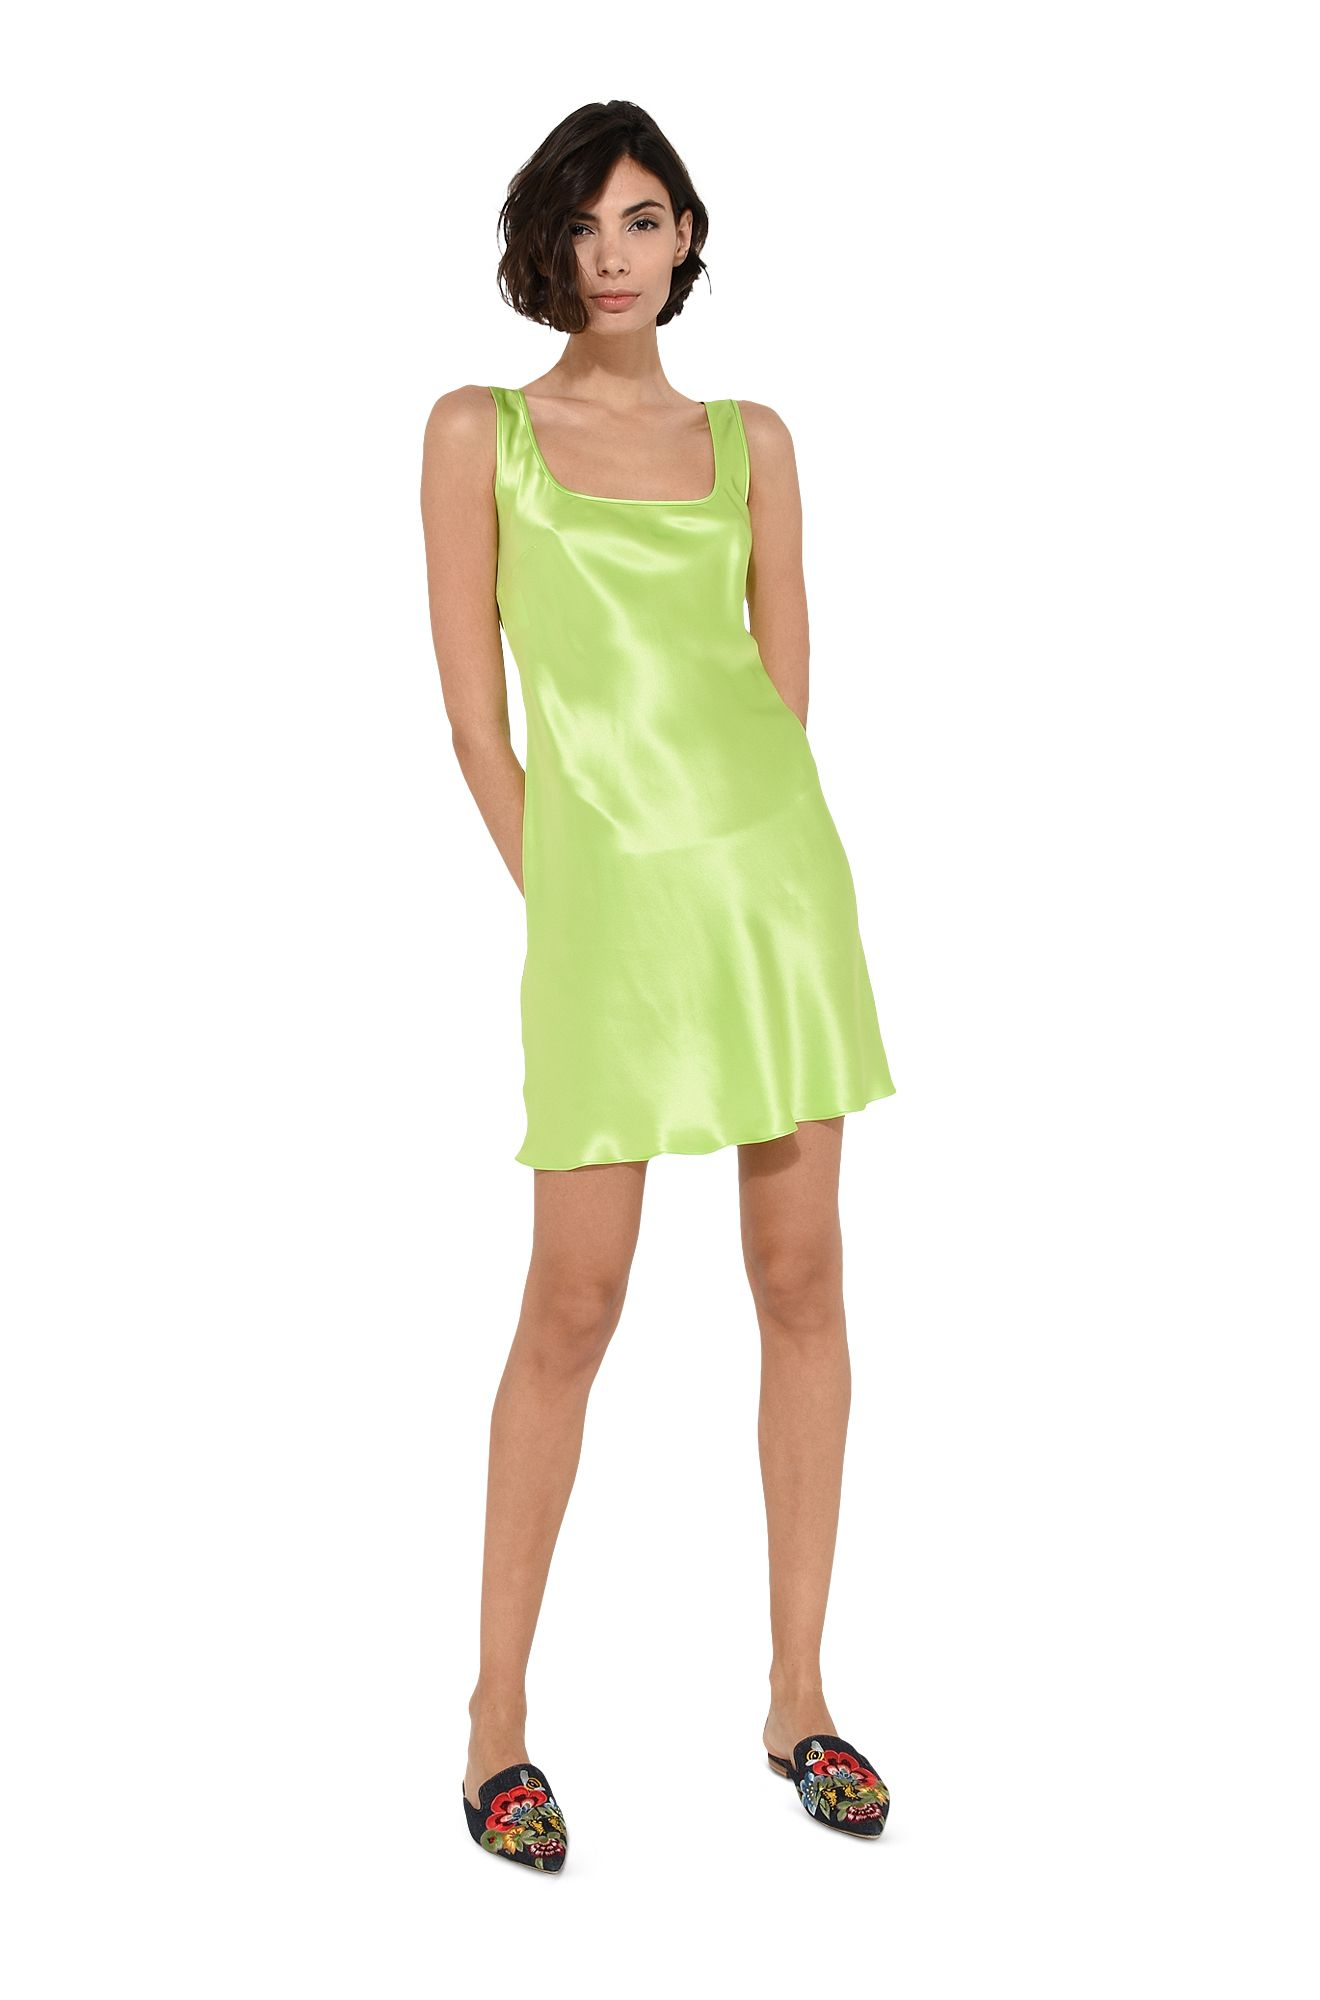 Fluo green camisole minidress